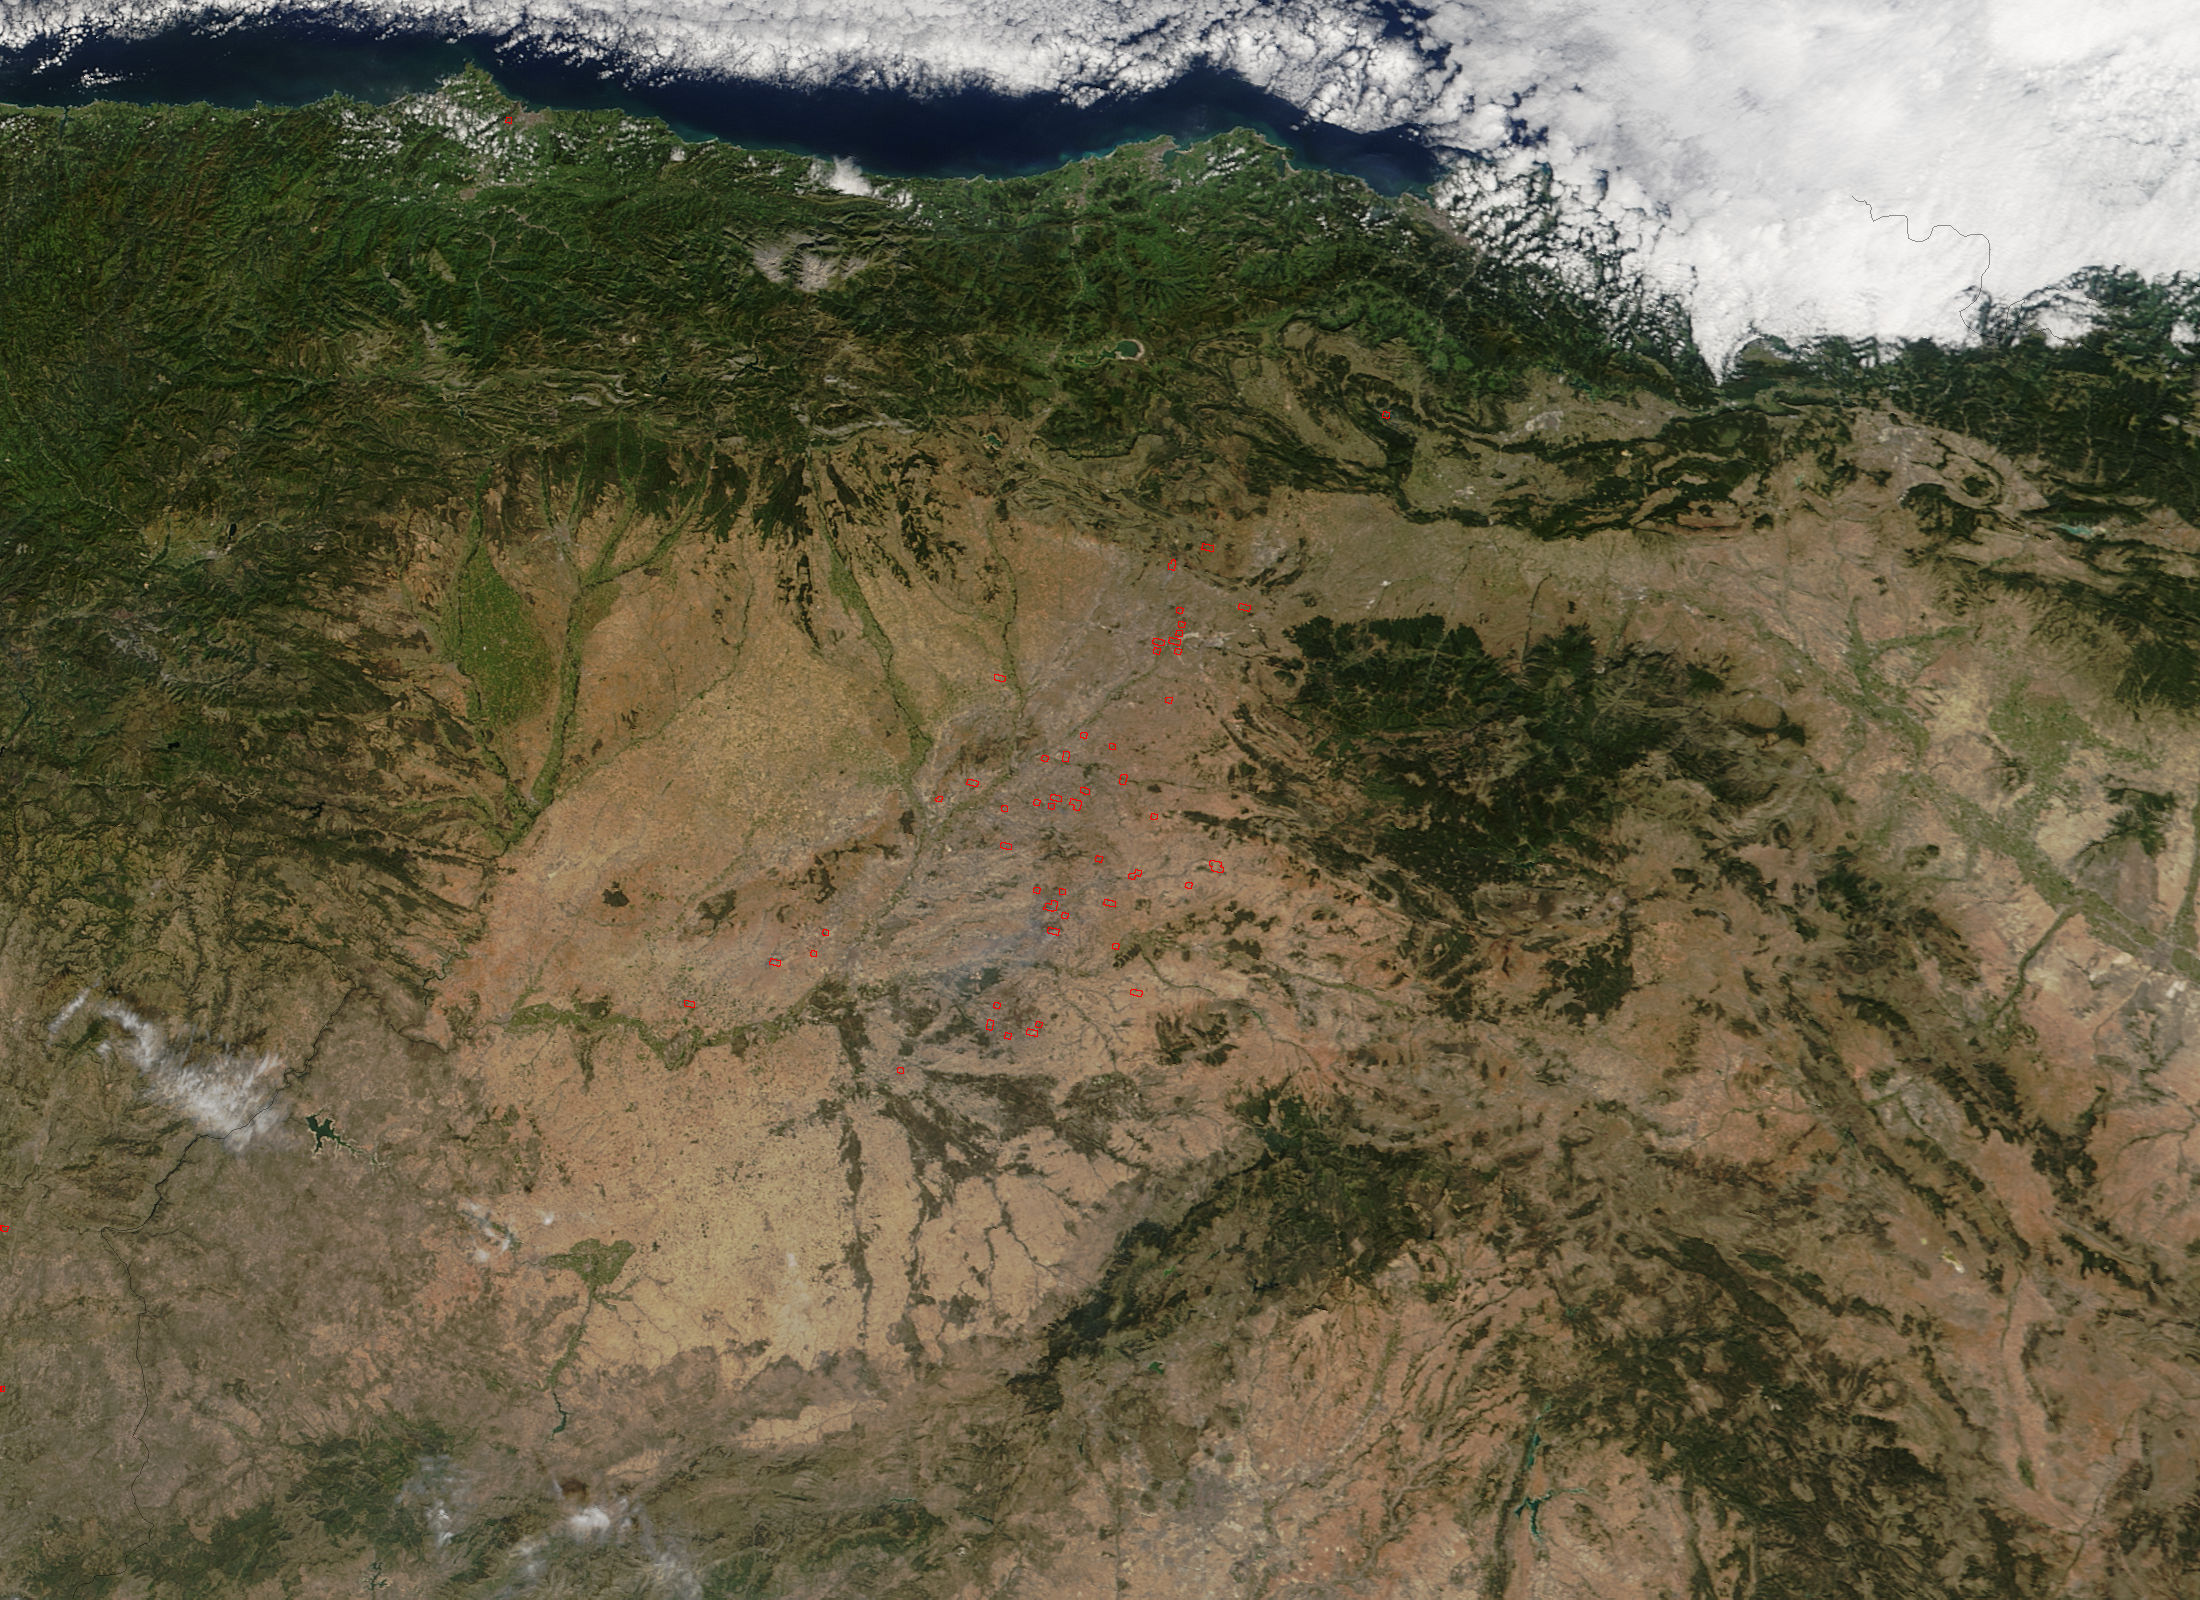 Fires in northern Spain